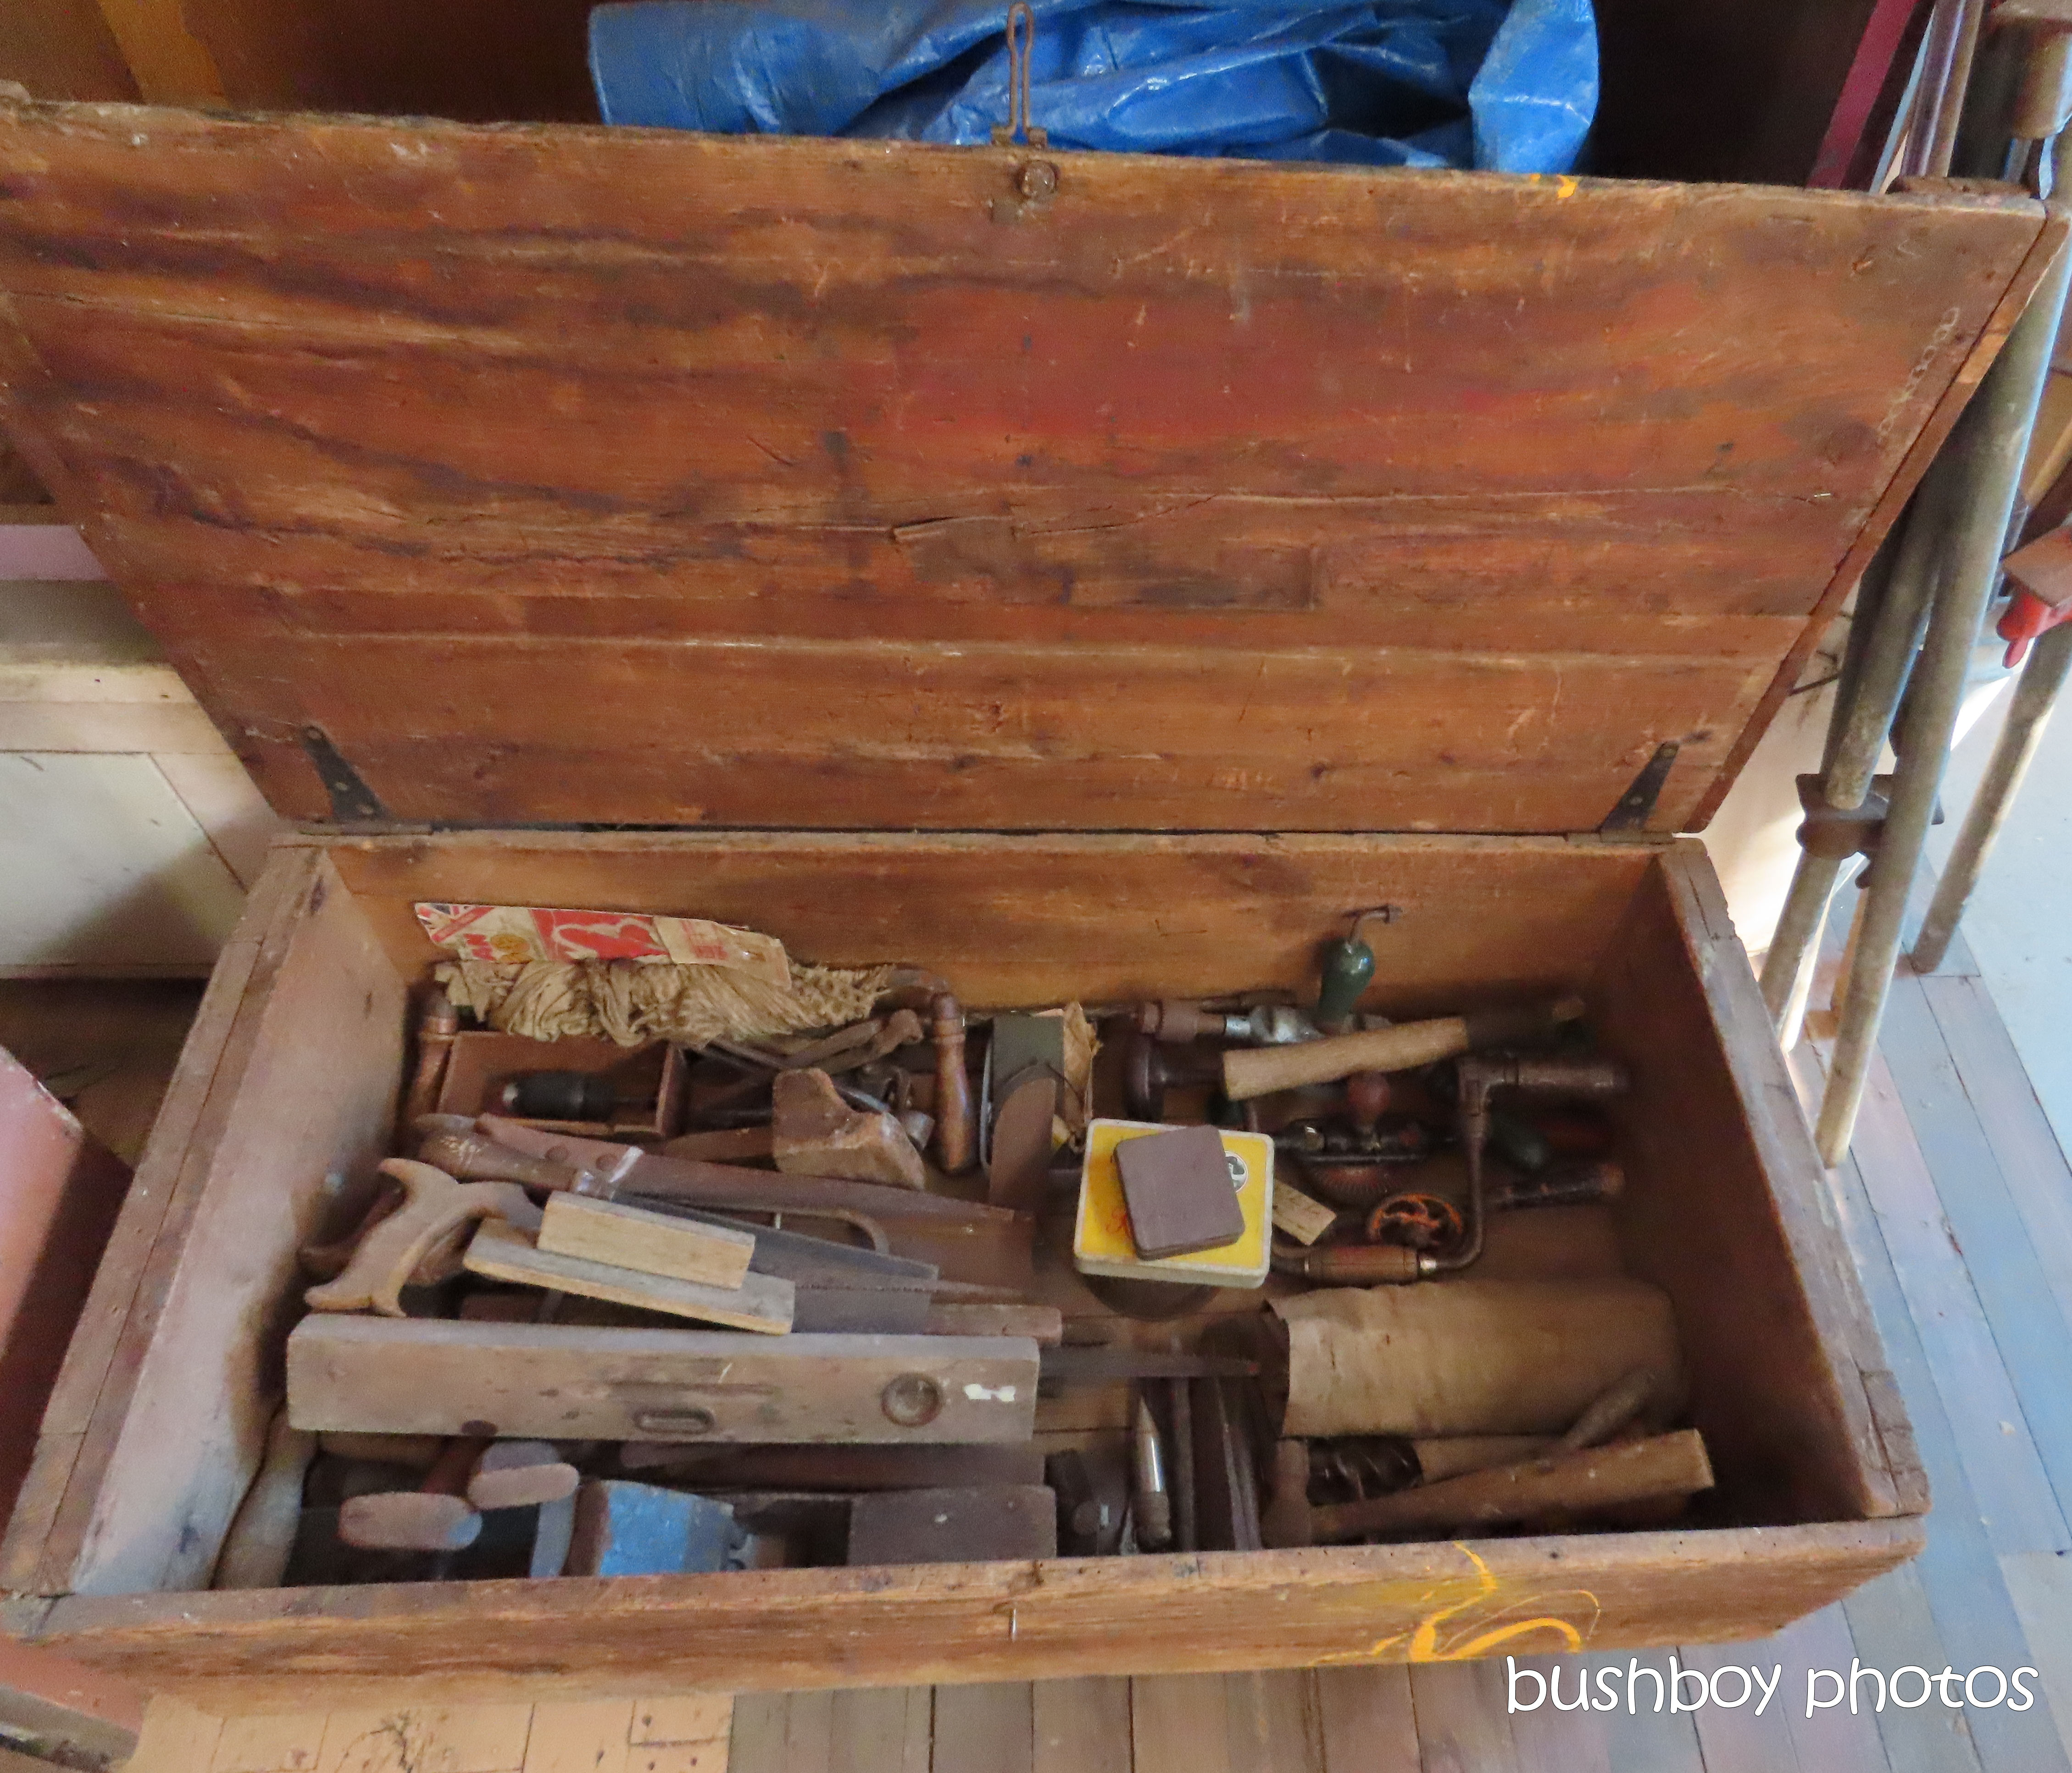 toolbox_grandfathers_tools_named_home_jackadgery_sept 2019